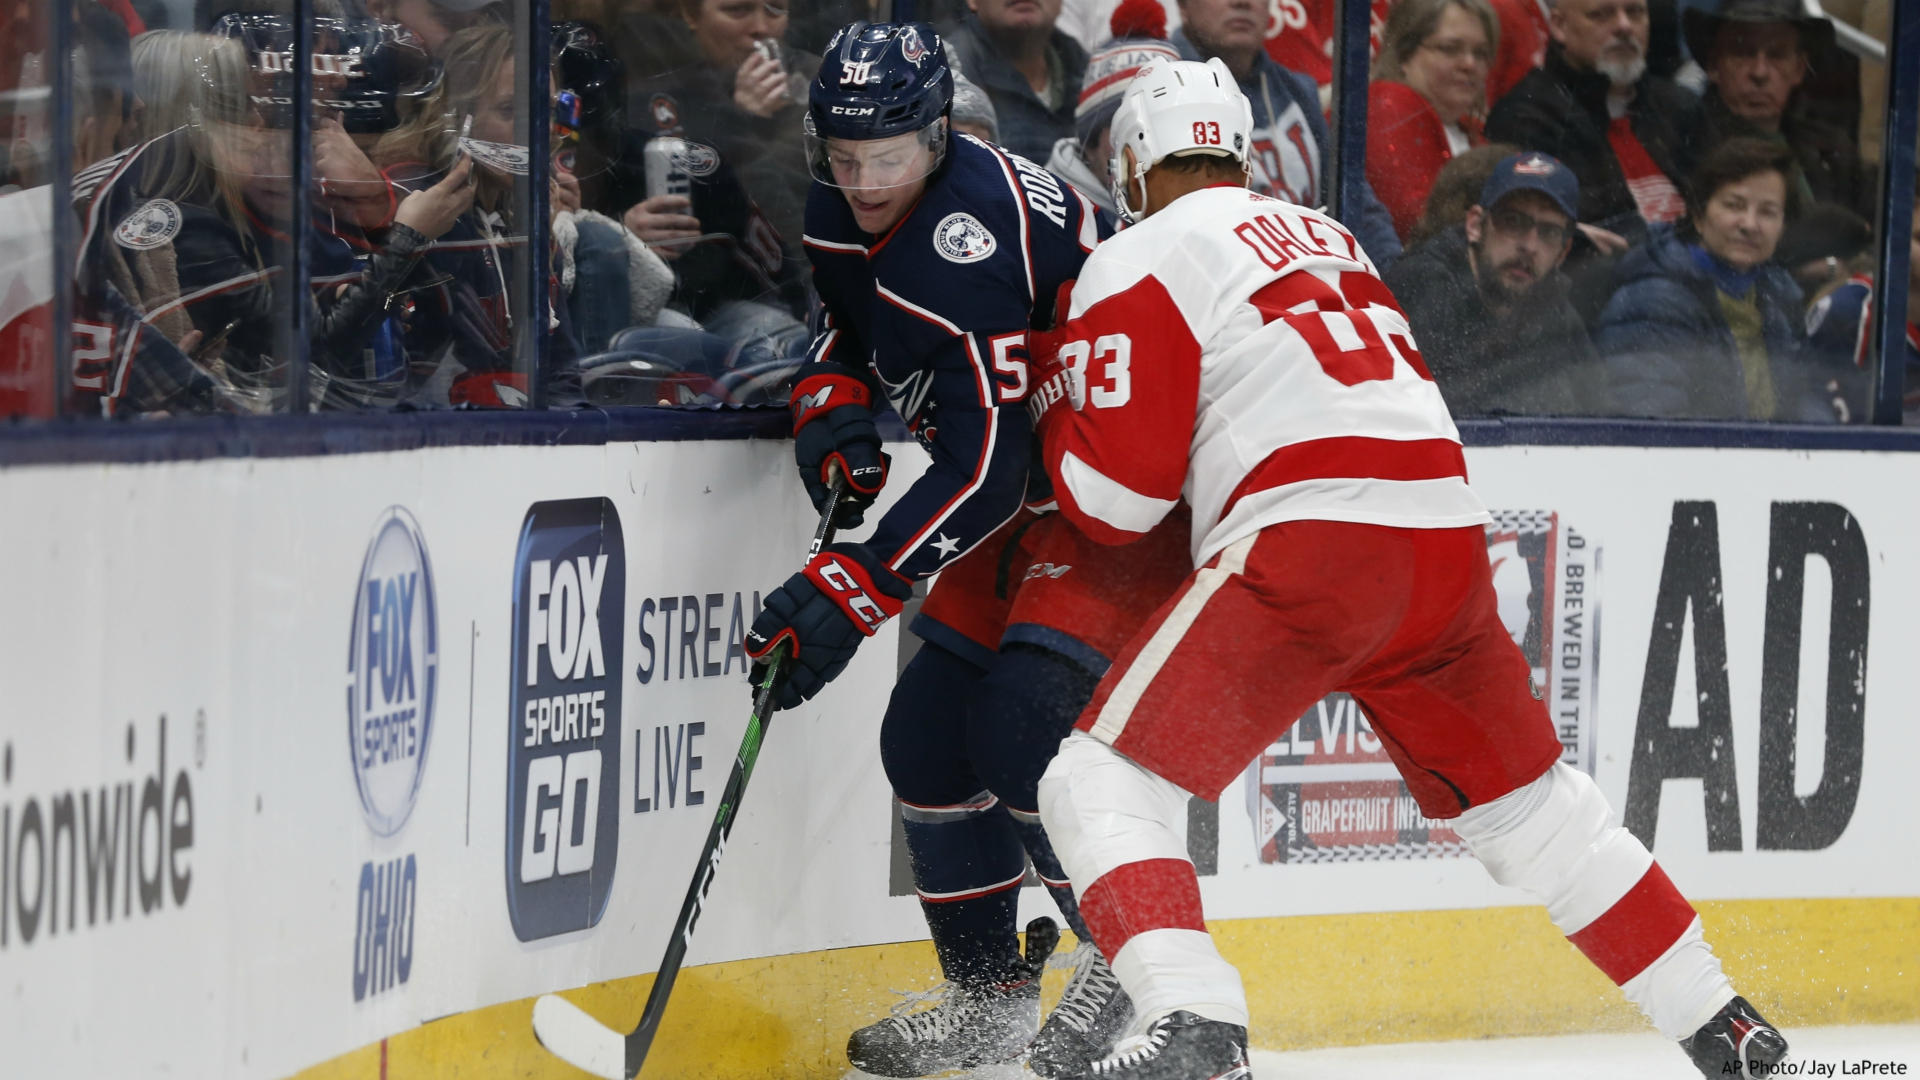 Columbus Blue Jackets' Eric Robinson, left, controls the puck as Detroit Red Wings' Trevor Daley defends during the second period of an NHL hockey game Friday, Feb. 7, 2020, in Columbus, Ohio. (AP Photo/Jay LaPrete)